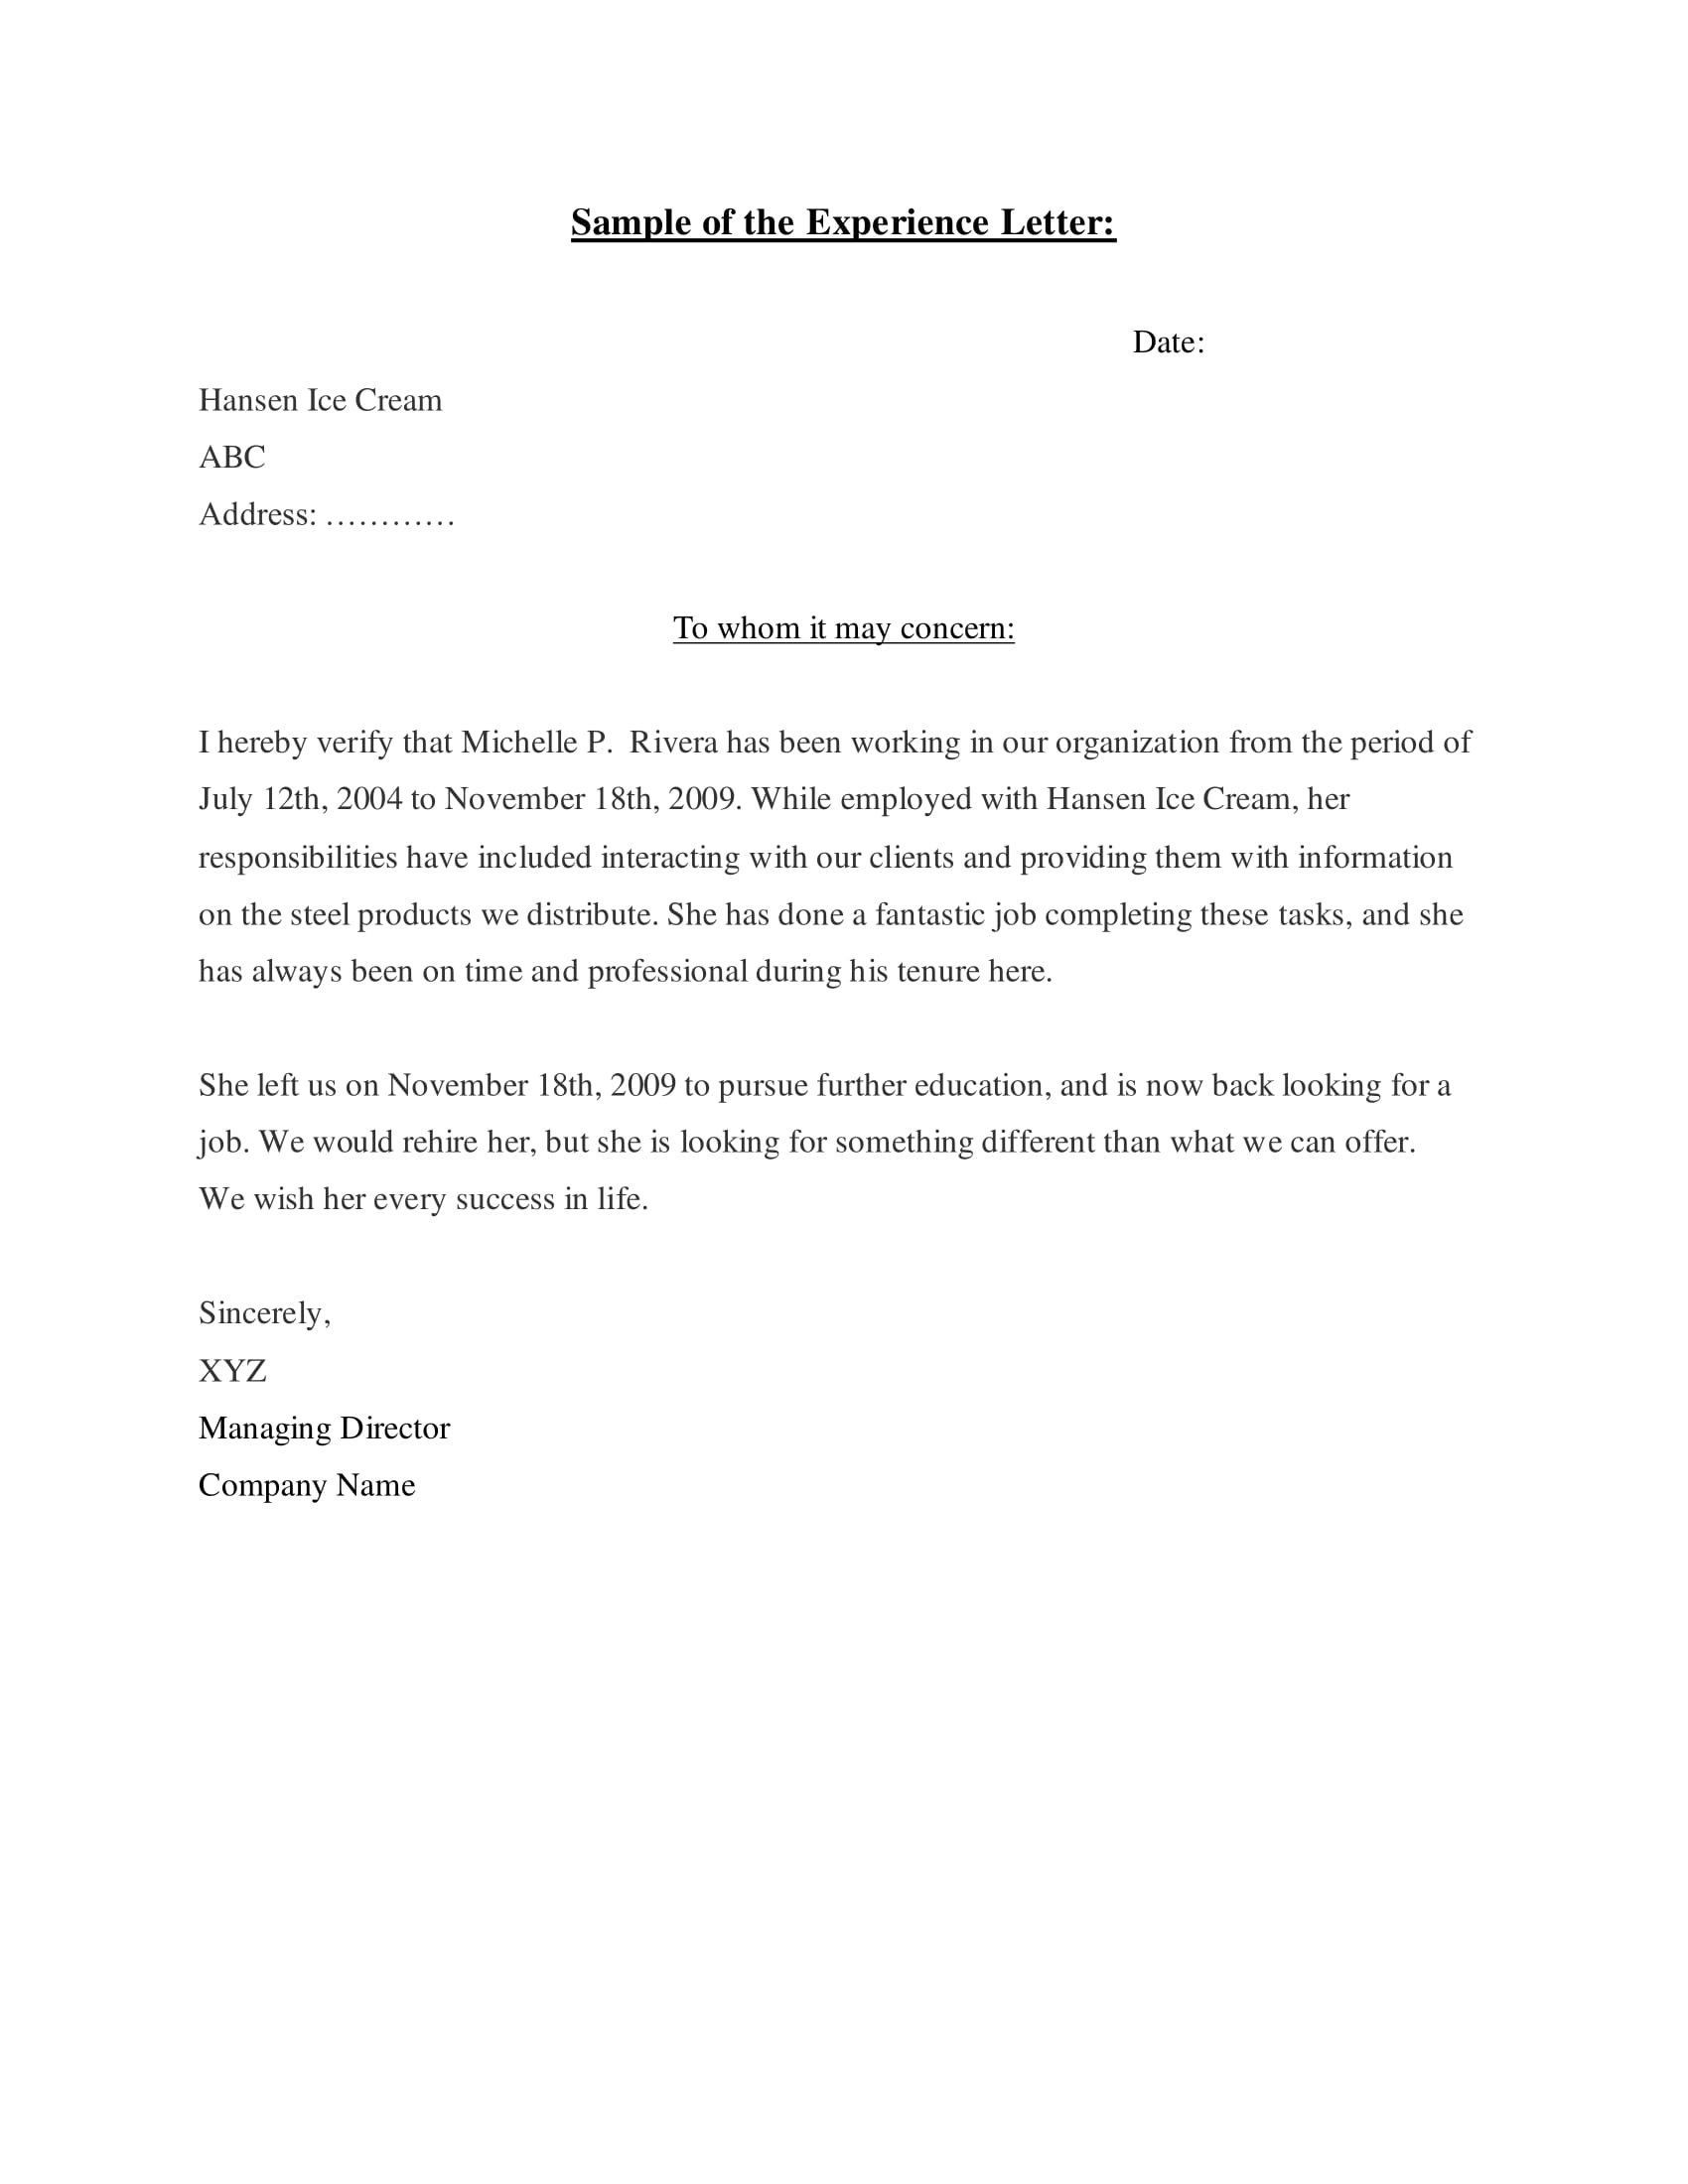 Pin By Helen G Holtz On Finding A Job Letter Templates Certificate Format Business Letter Sample